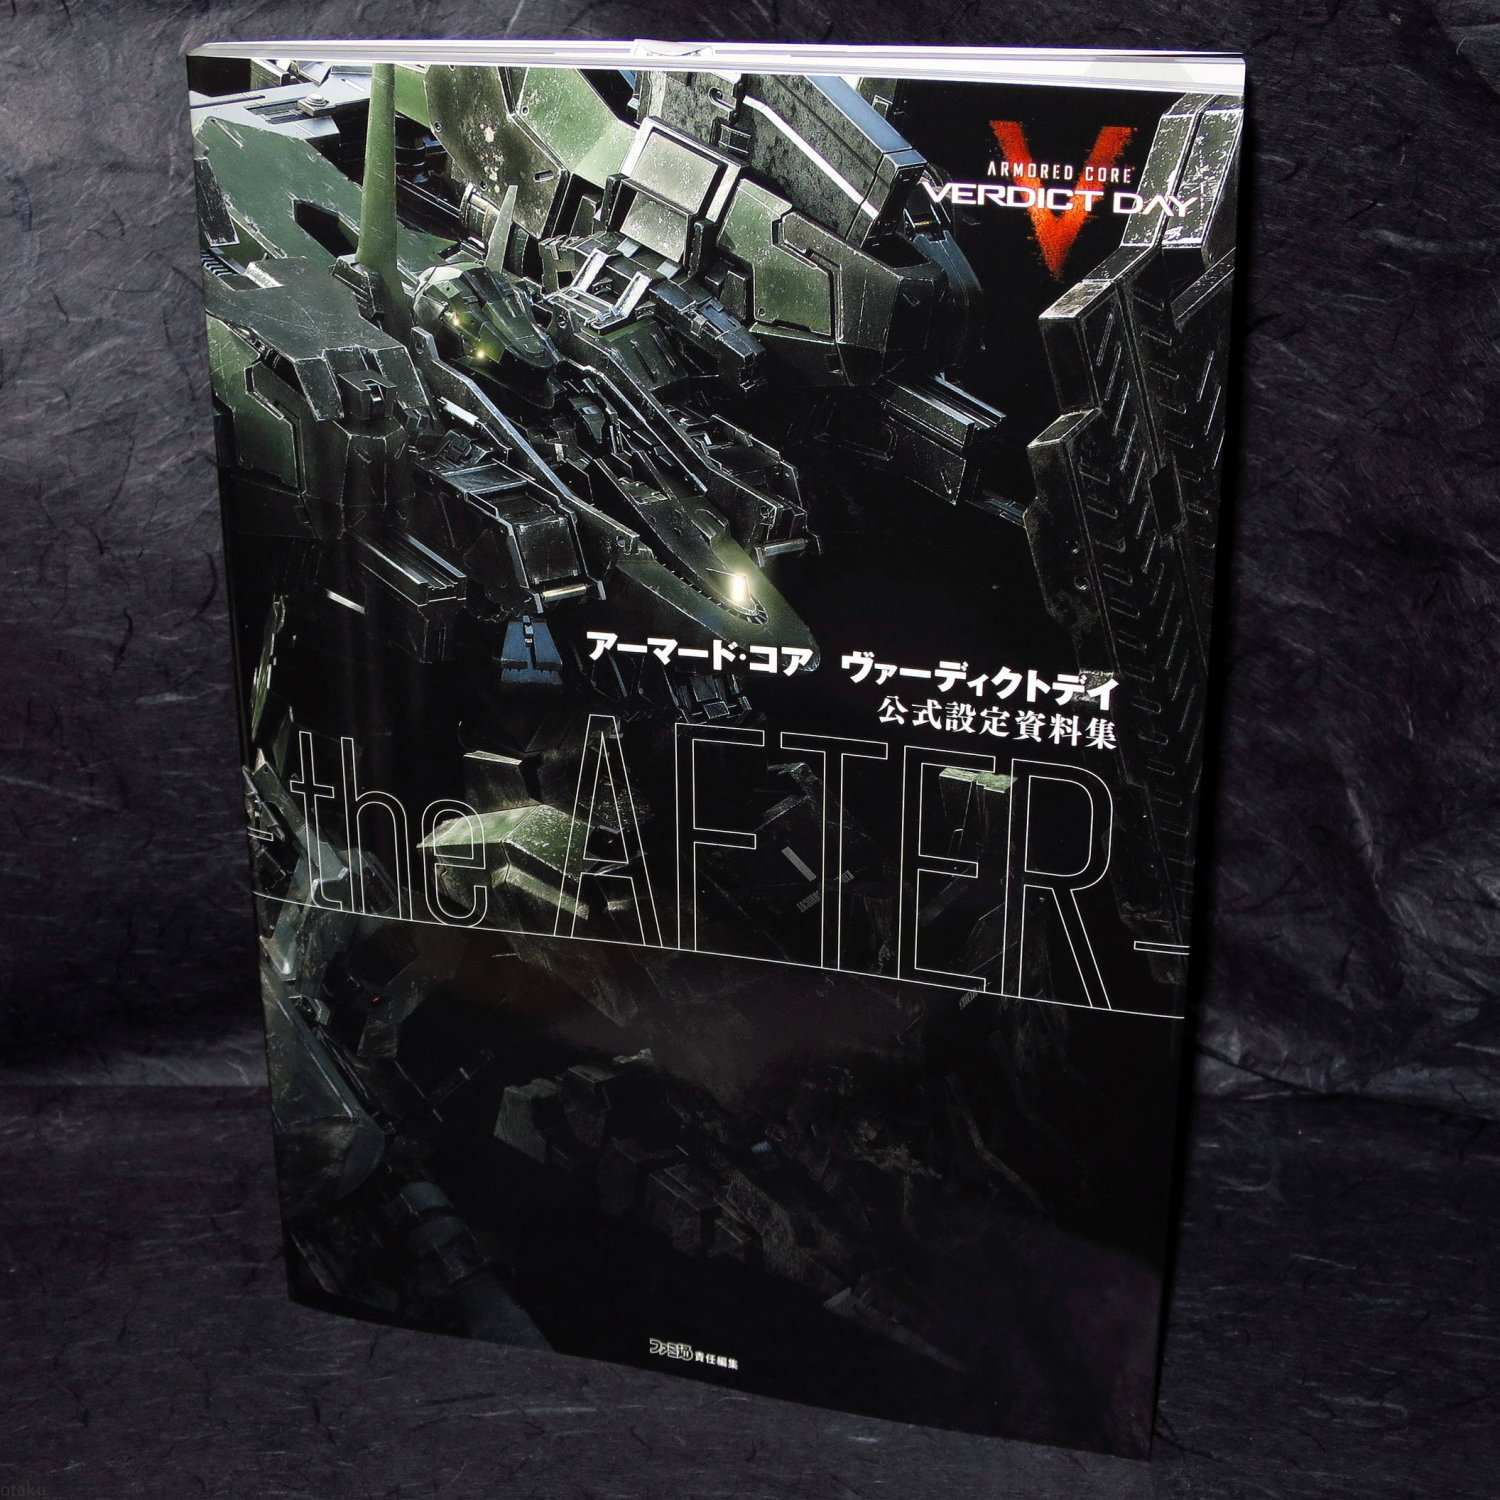 Armored Core Verdict Day Official Setting Documents Collection Game Guide Book